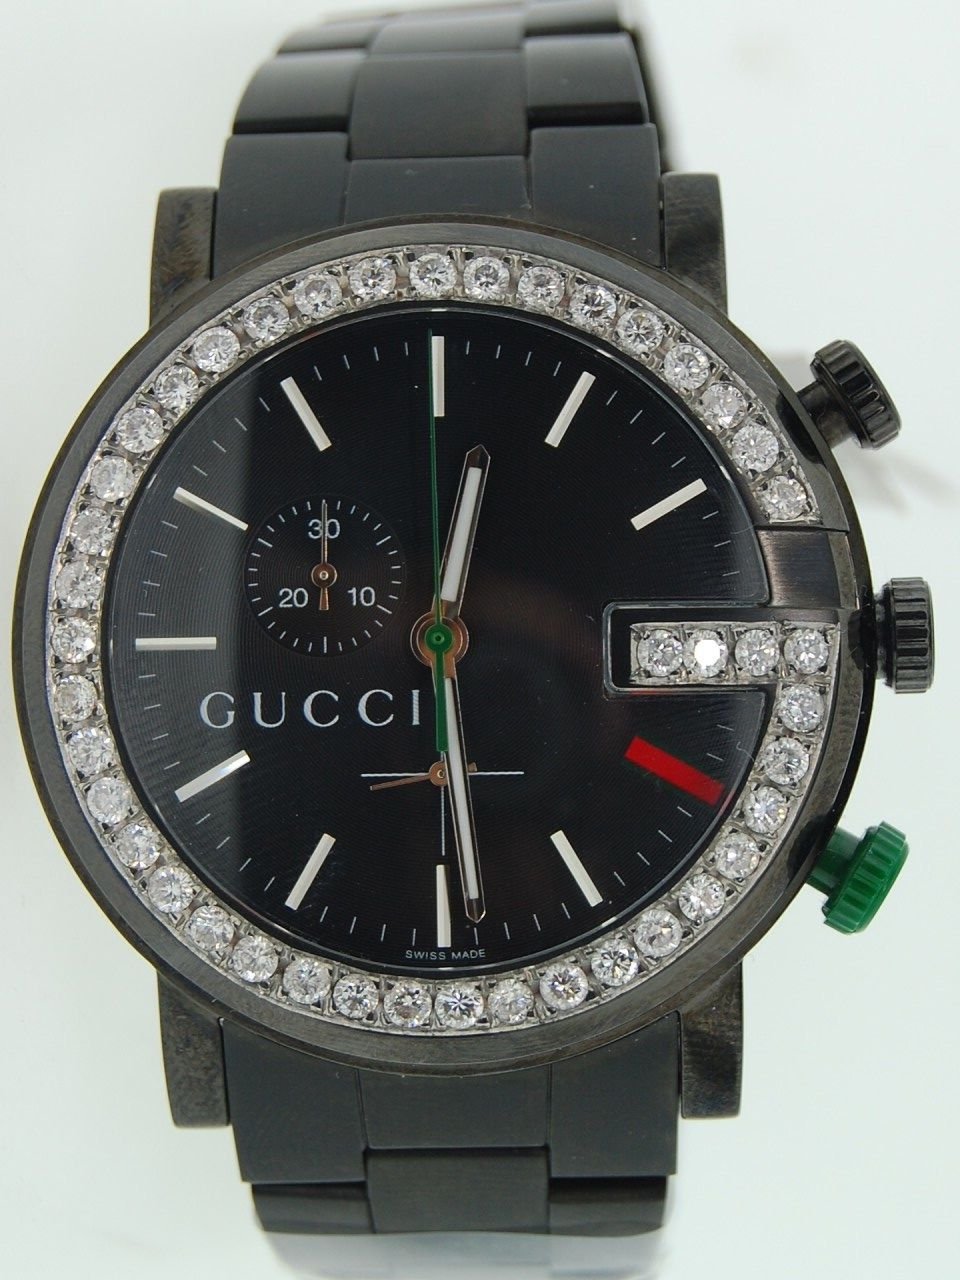 gucci watches accessories diamond watches mens 3 5 gucci watches accessories diamond watches mens 3 5 carat